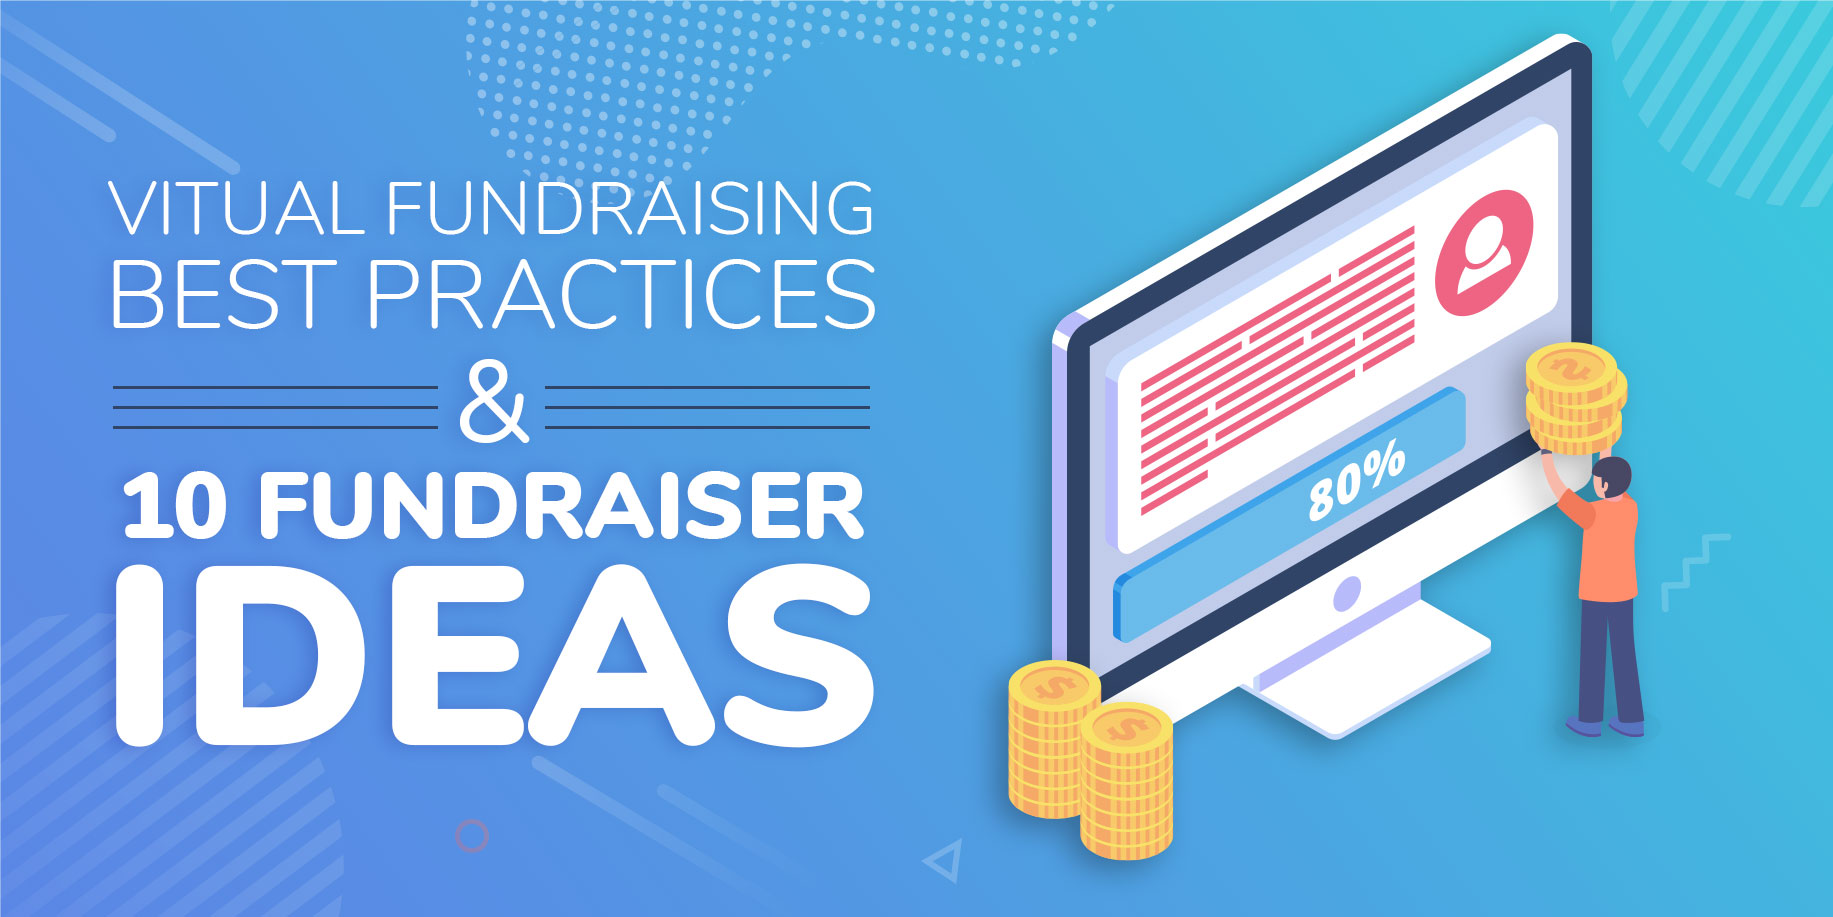 Virtual Fundraising Best Practices And 10 Fundraising Ideas